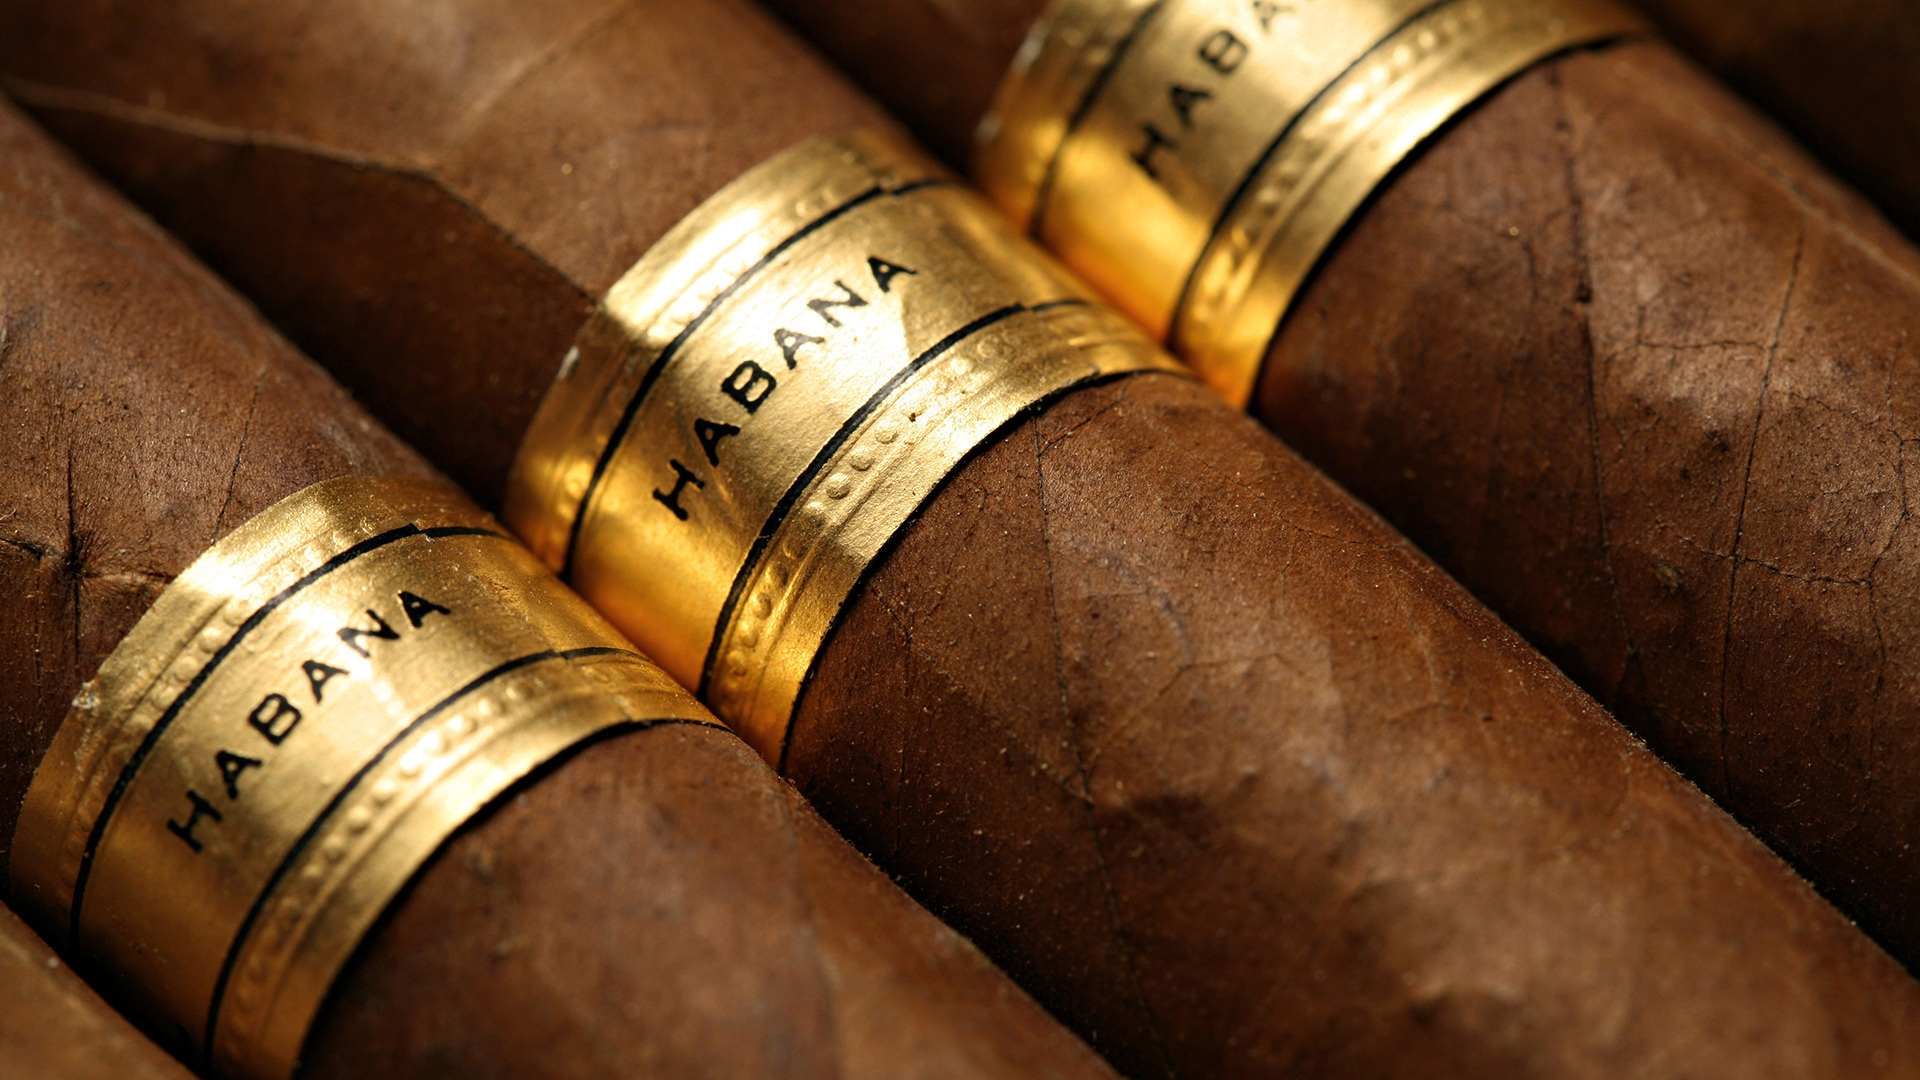 8 Excellent Hd Cigar Wallpapers HD Wallpapers Download Free Images Wallpaper [1000image.com]